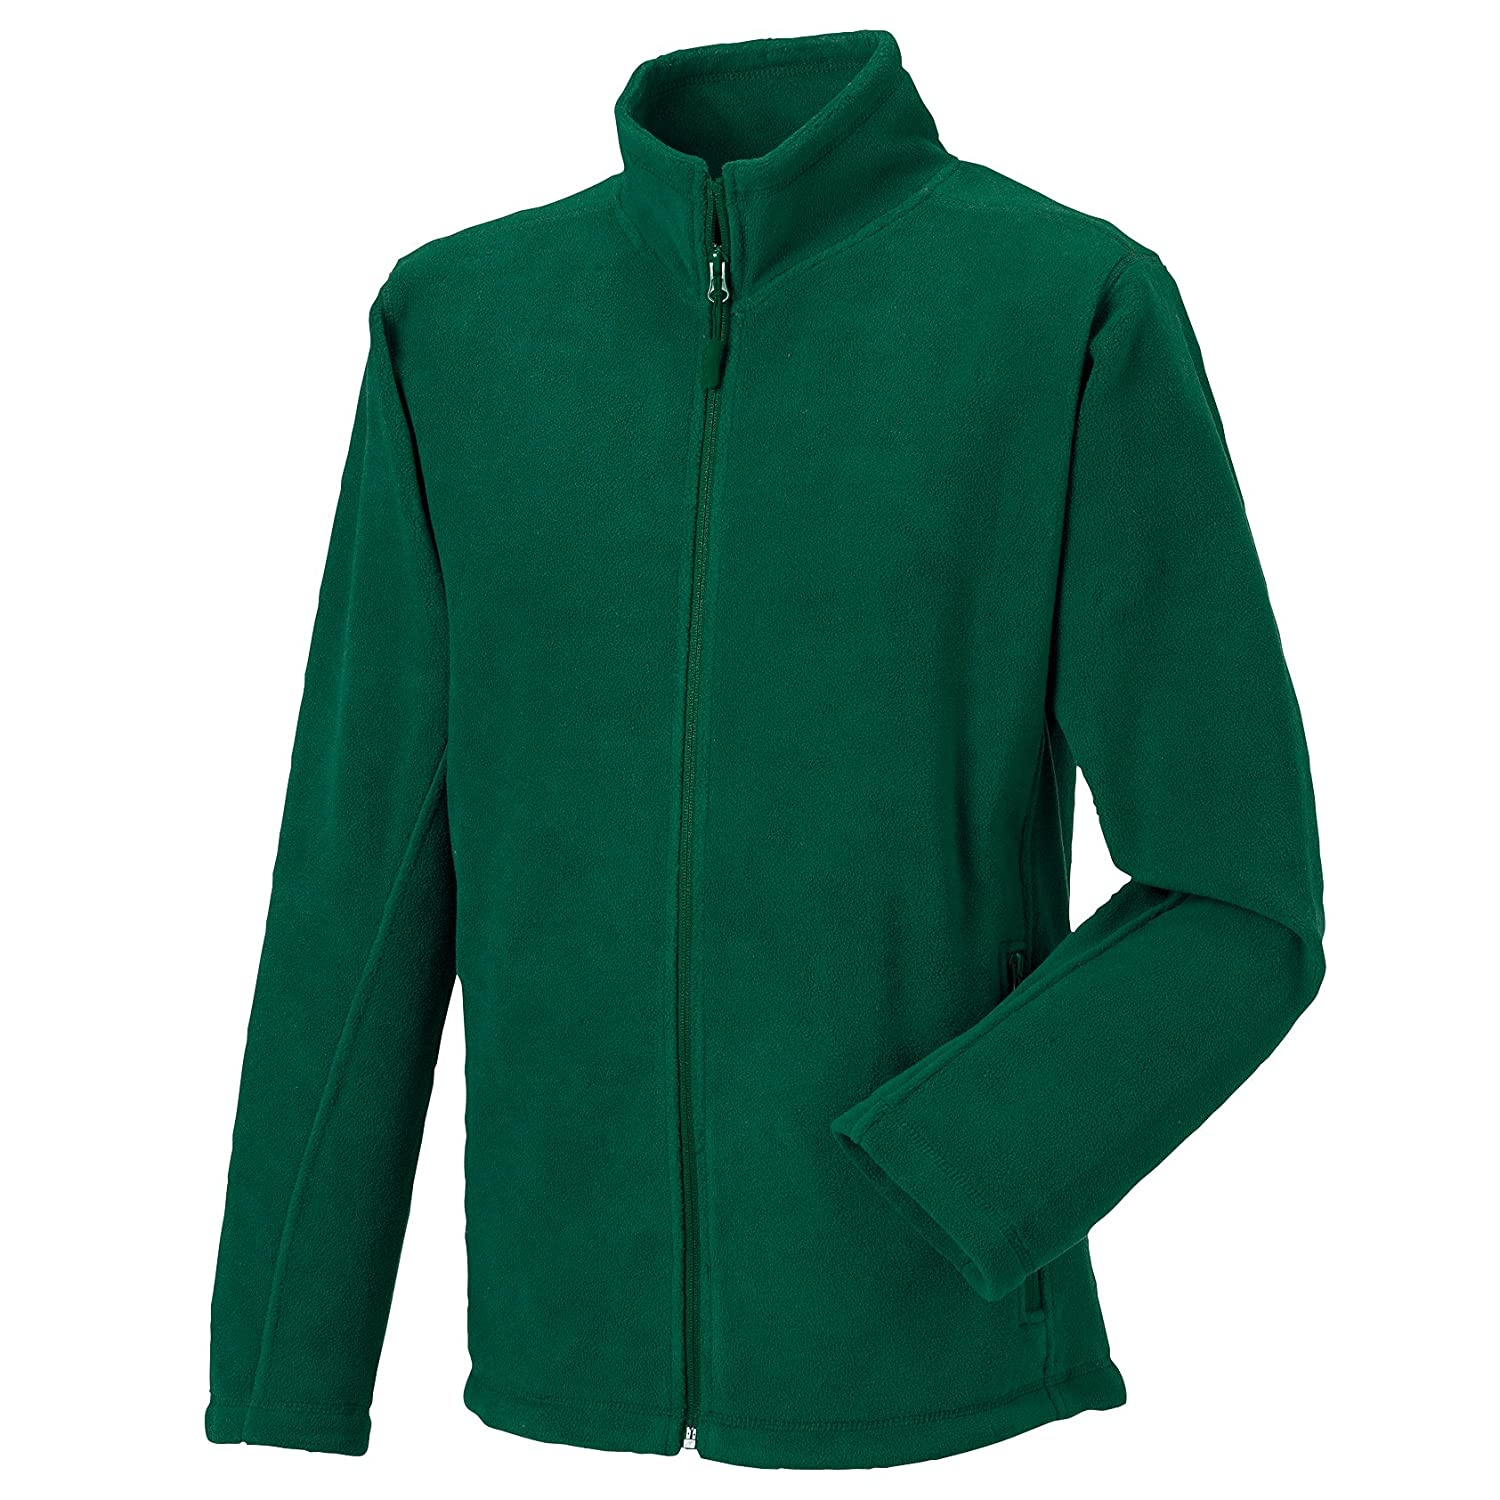 Full zip outdoor fleece Russell